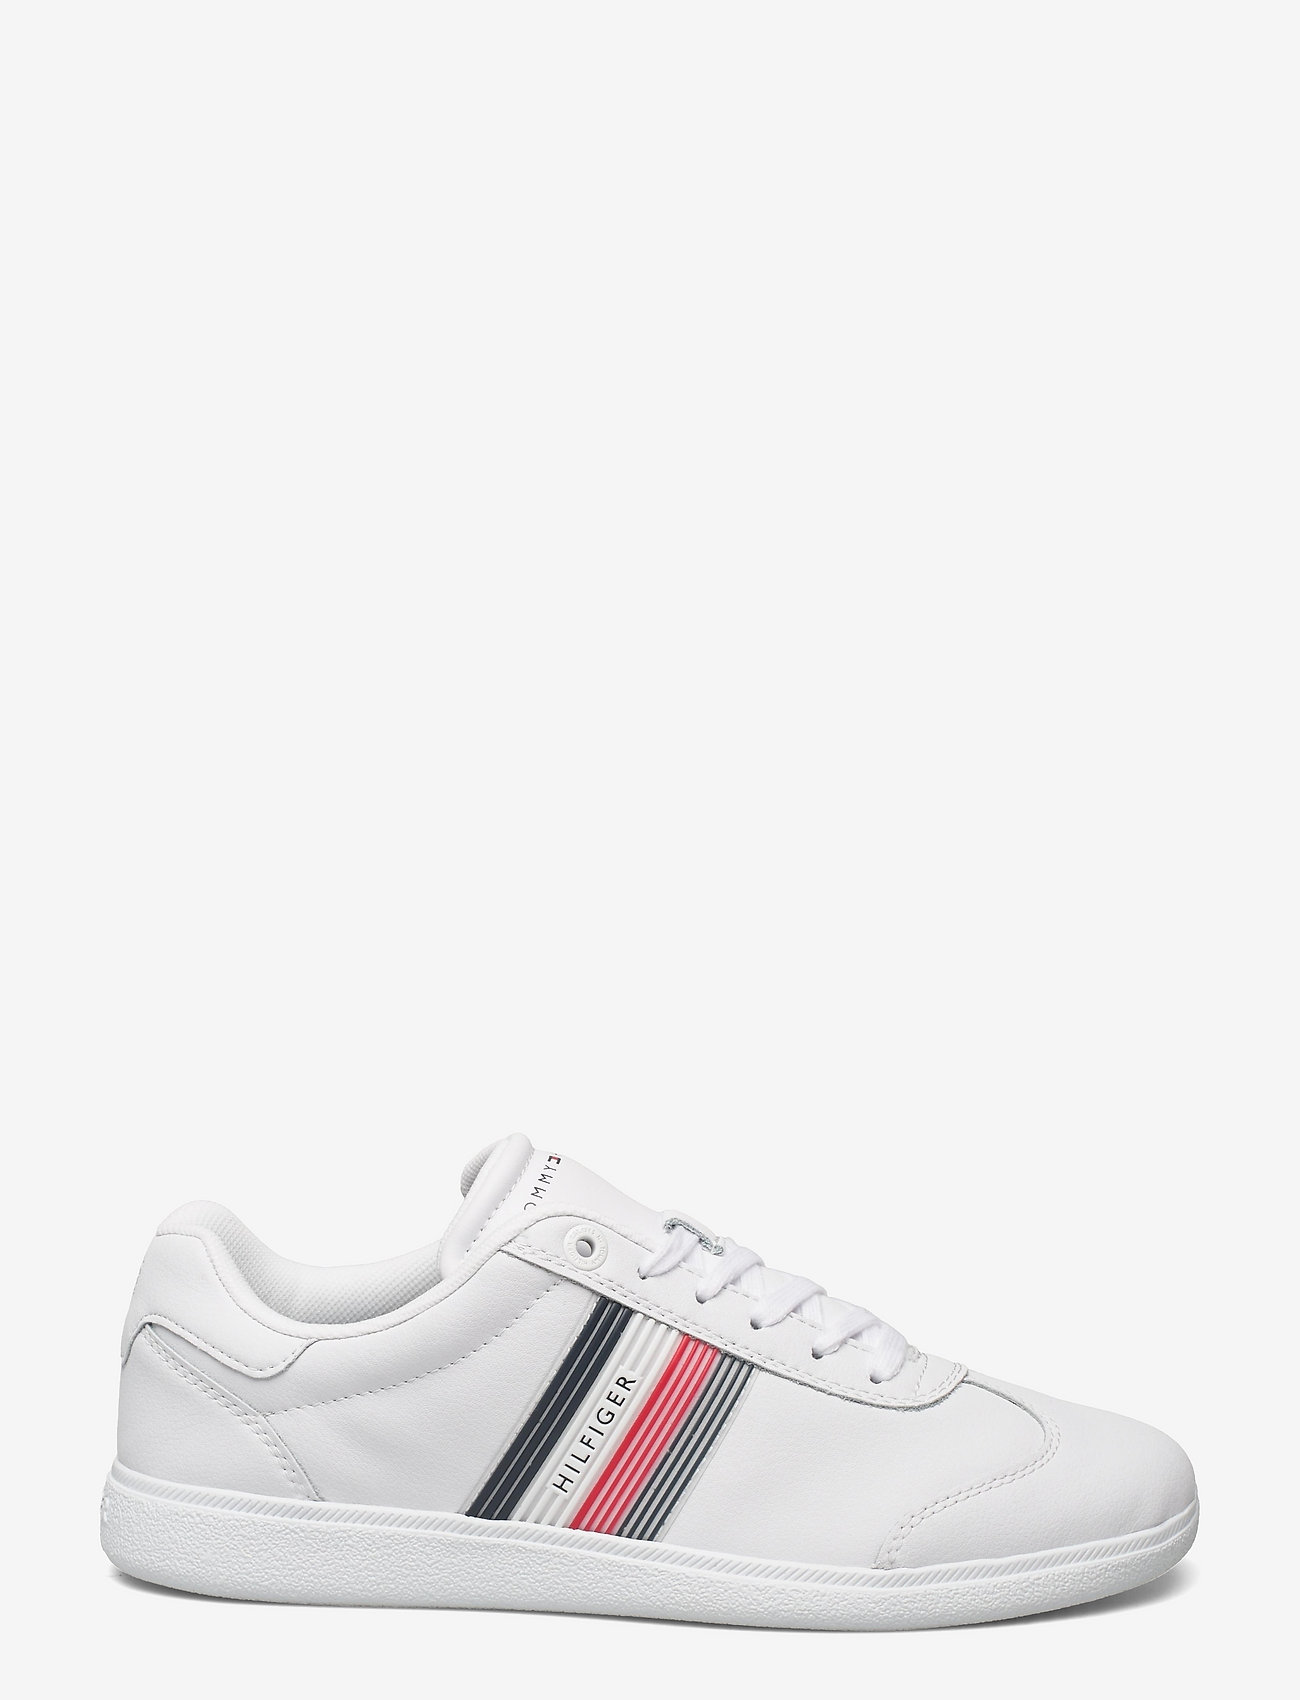 Tommy Hilfiger - CORE CORPORATE LEATHER CUPSOLE - low tops - white - 1